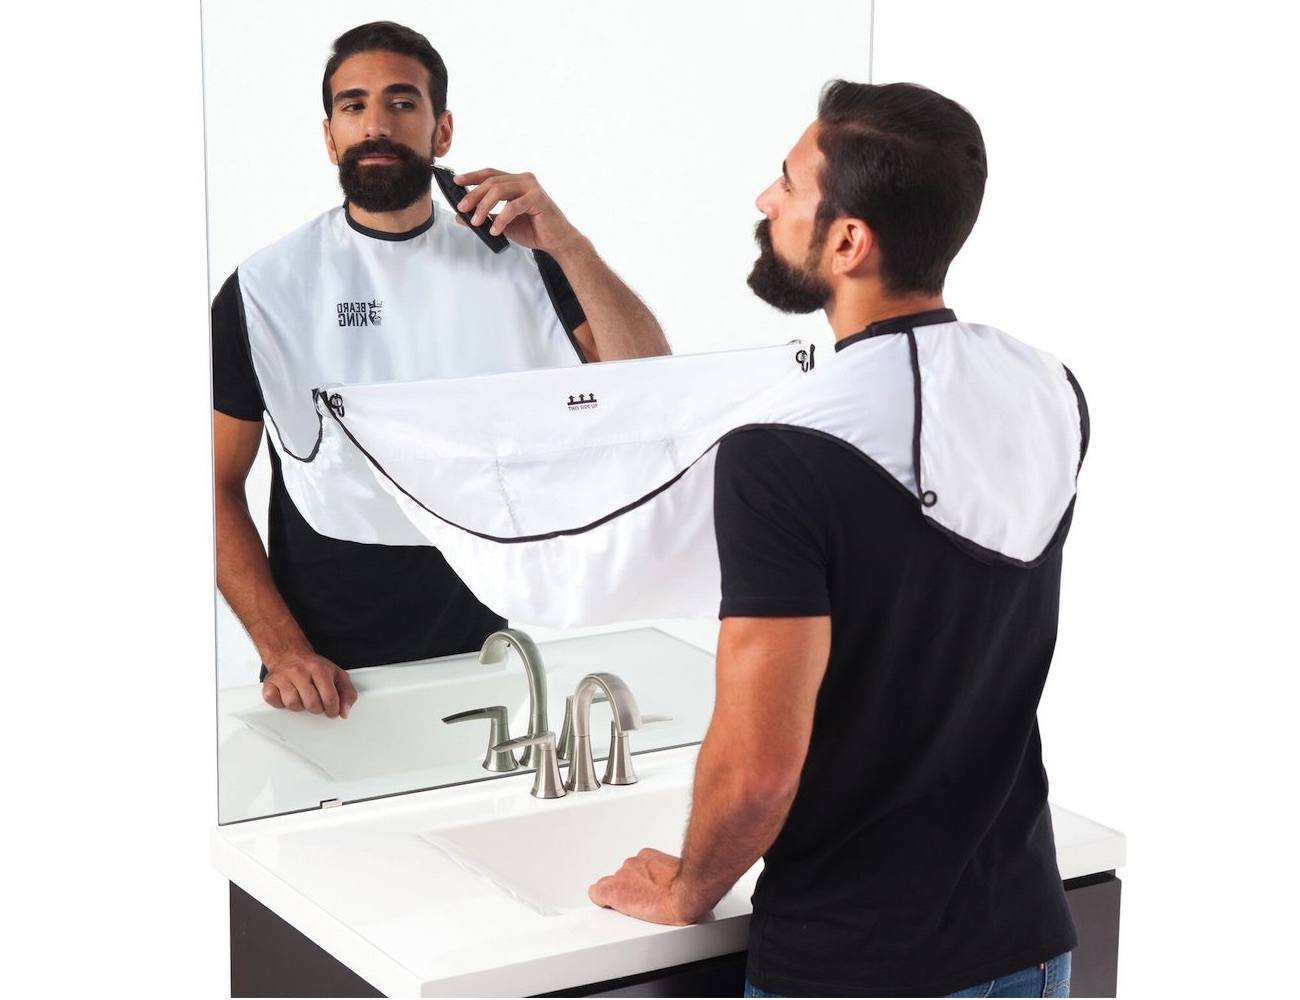 BEARD BIB – Hair Clippings Catcher